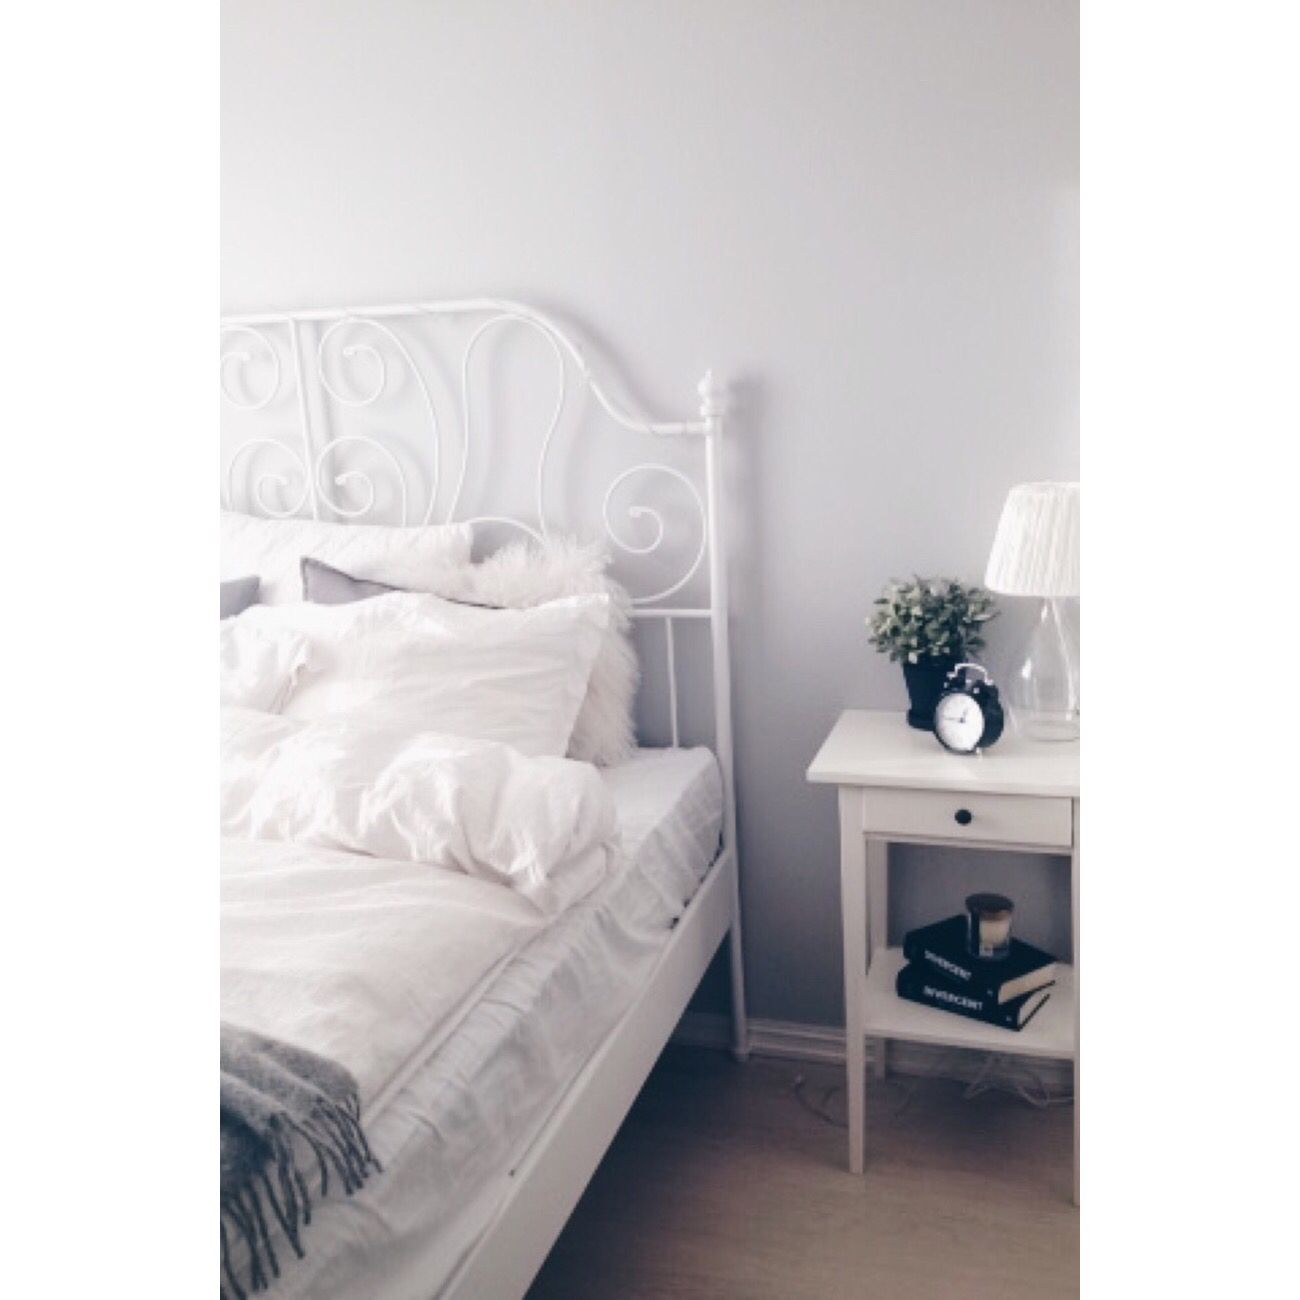 Schlafzimmer Deko Tumblr Room Inspiration Tumblr Leirvik Bed Ikea Bedroom 3 In 2019